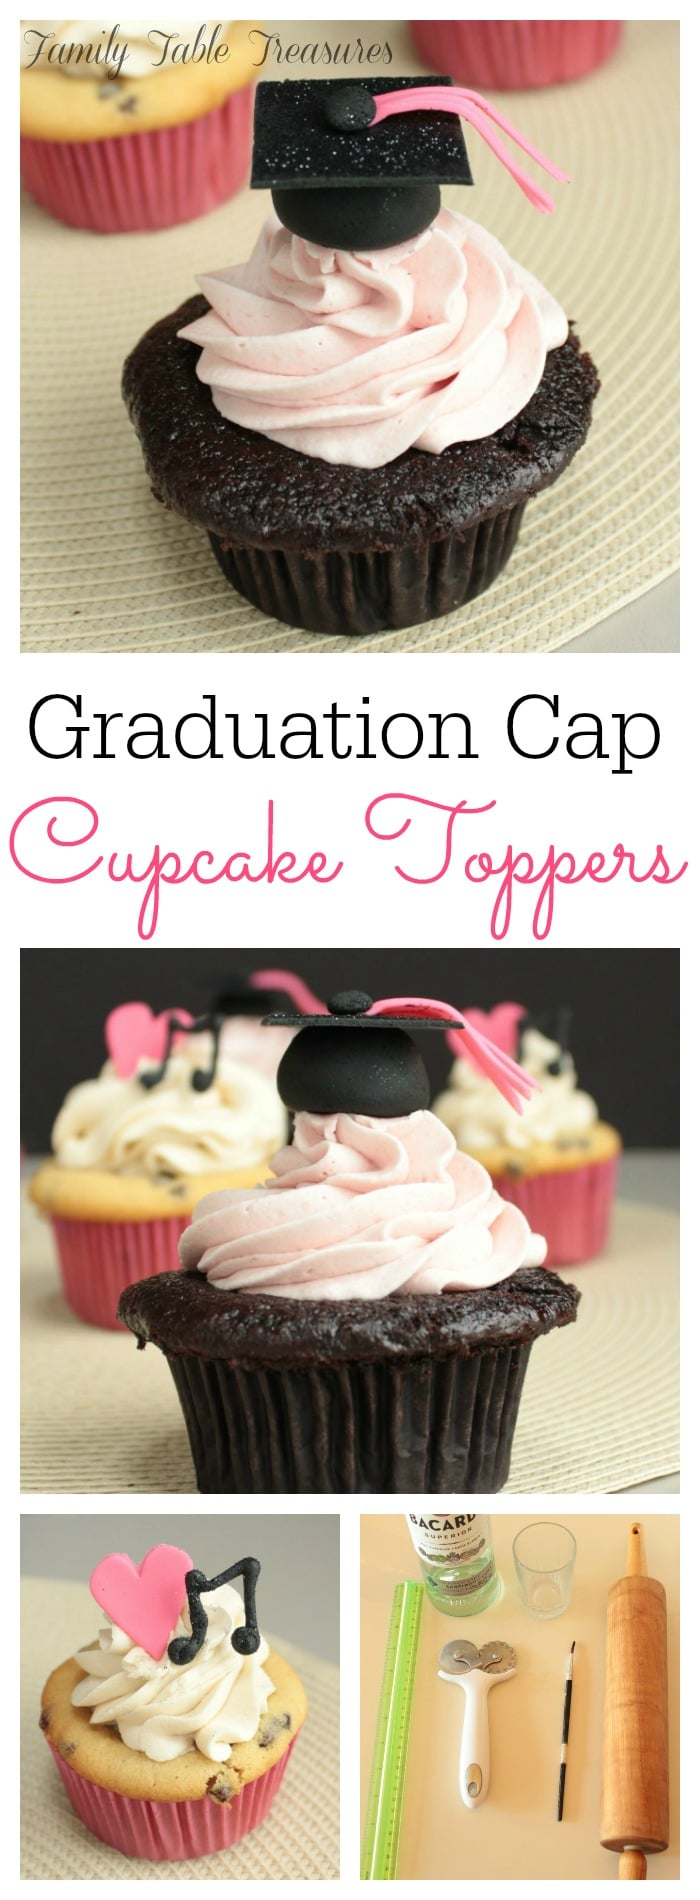 Graduation Cap Cupcake Toppers - Family Table Treasures